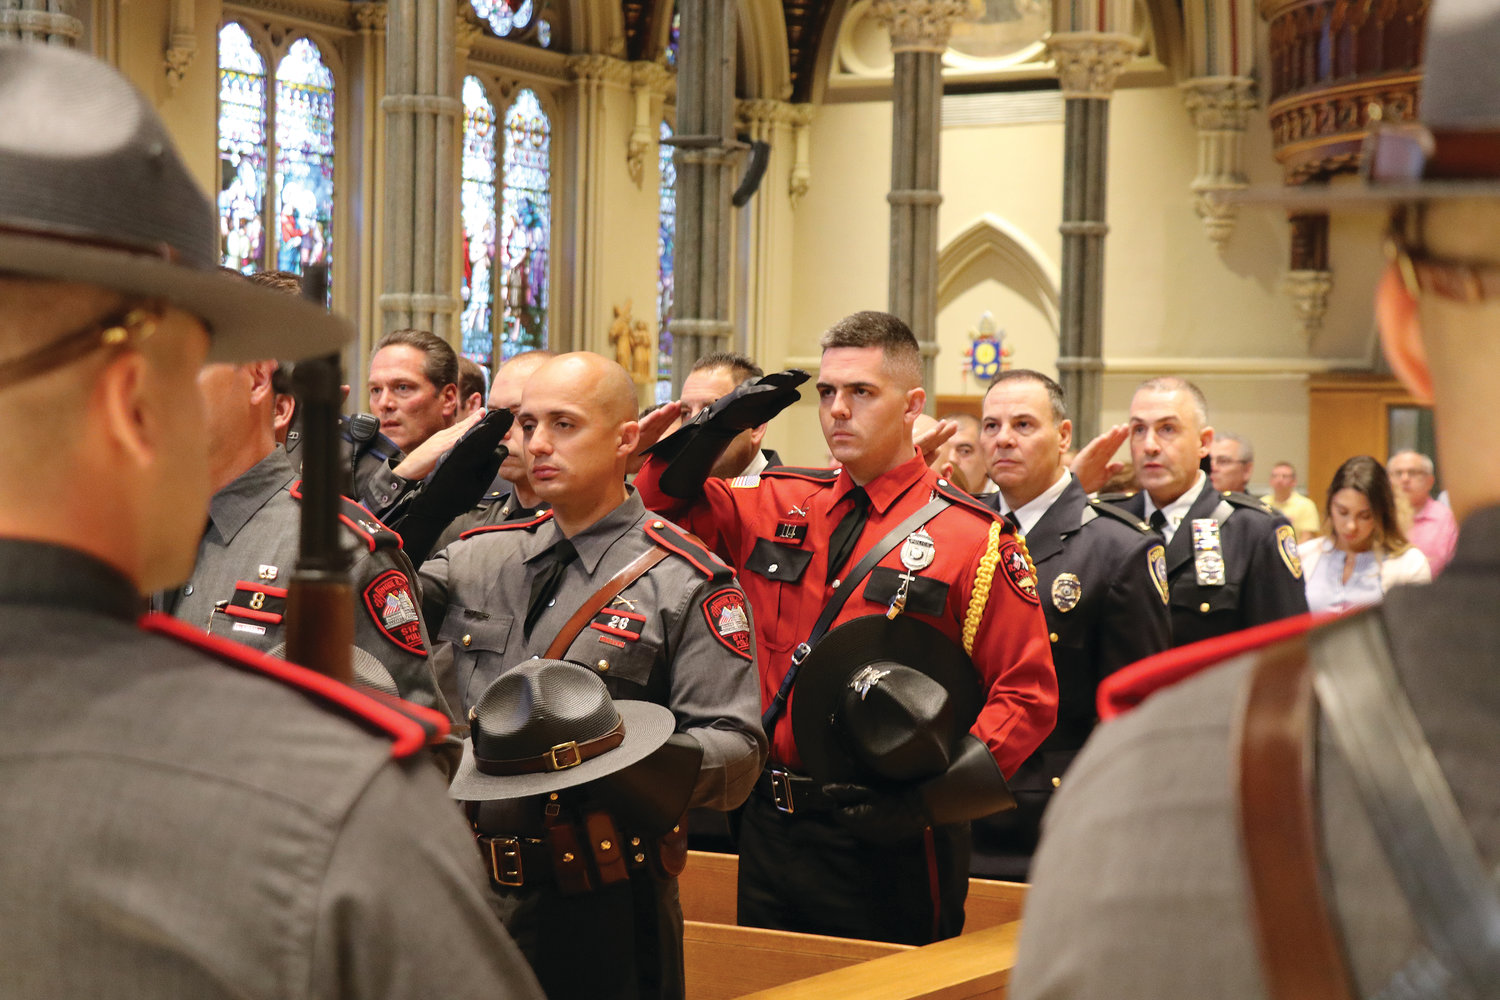 First responders gather for the Public Safety Mass at the Cathedral of SS. Peter & Paul.